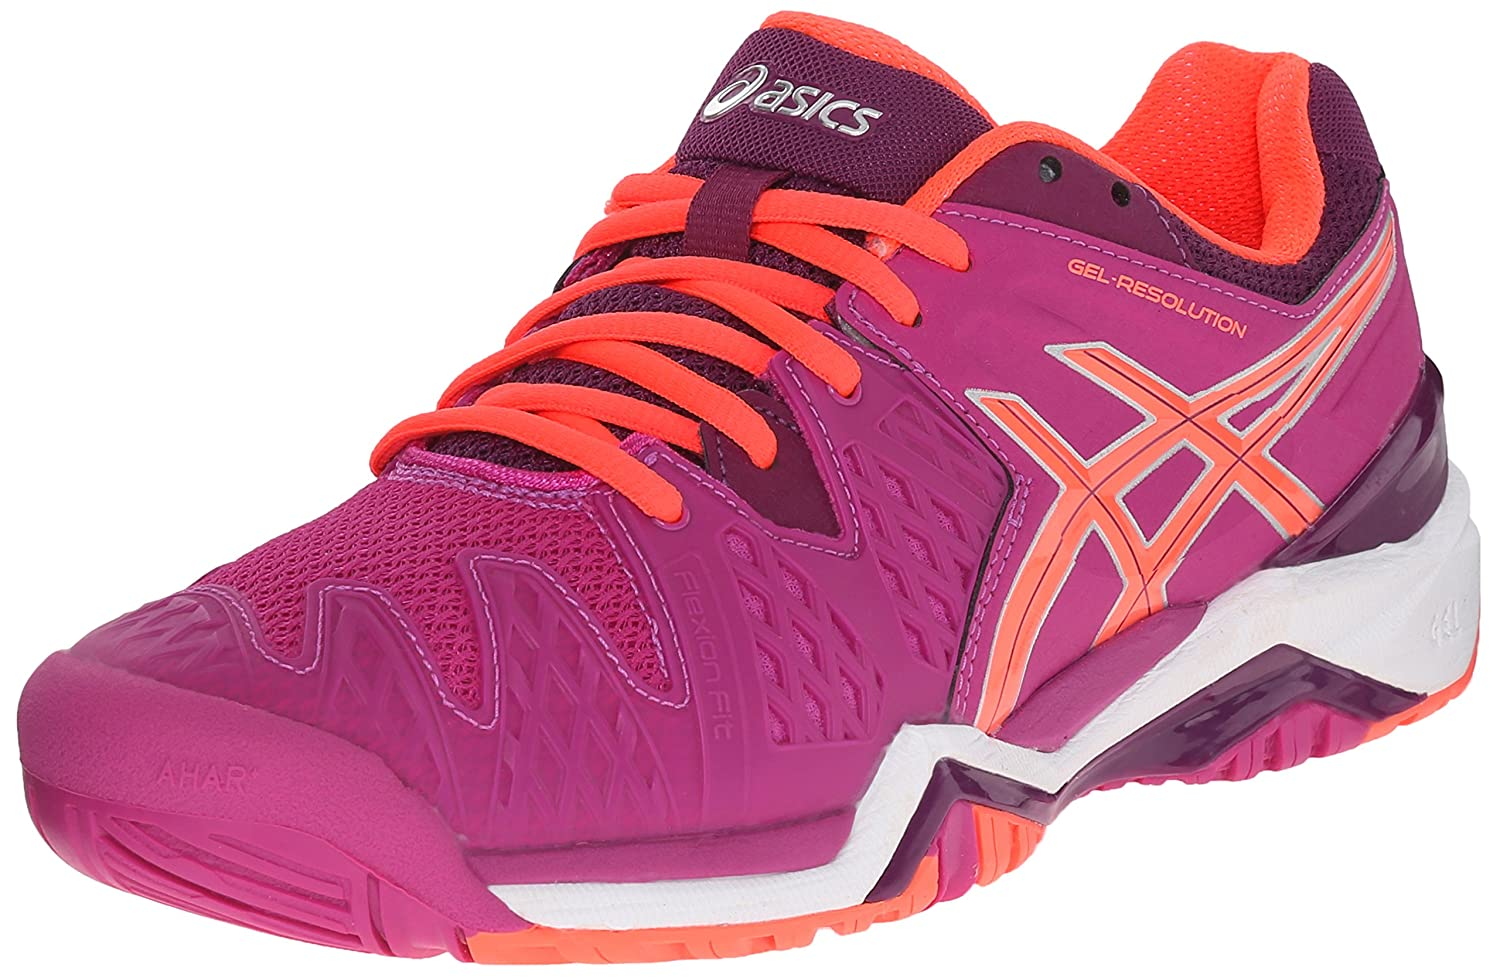 ASICS Gel Resolution 6 WIDE Women's Tennis Shoe White/Silver - WIDE version B00XYCNSBY 12 B(M) US|Berry/Flash Coral/Plum